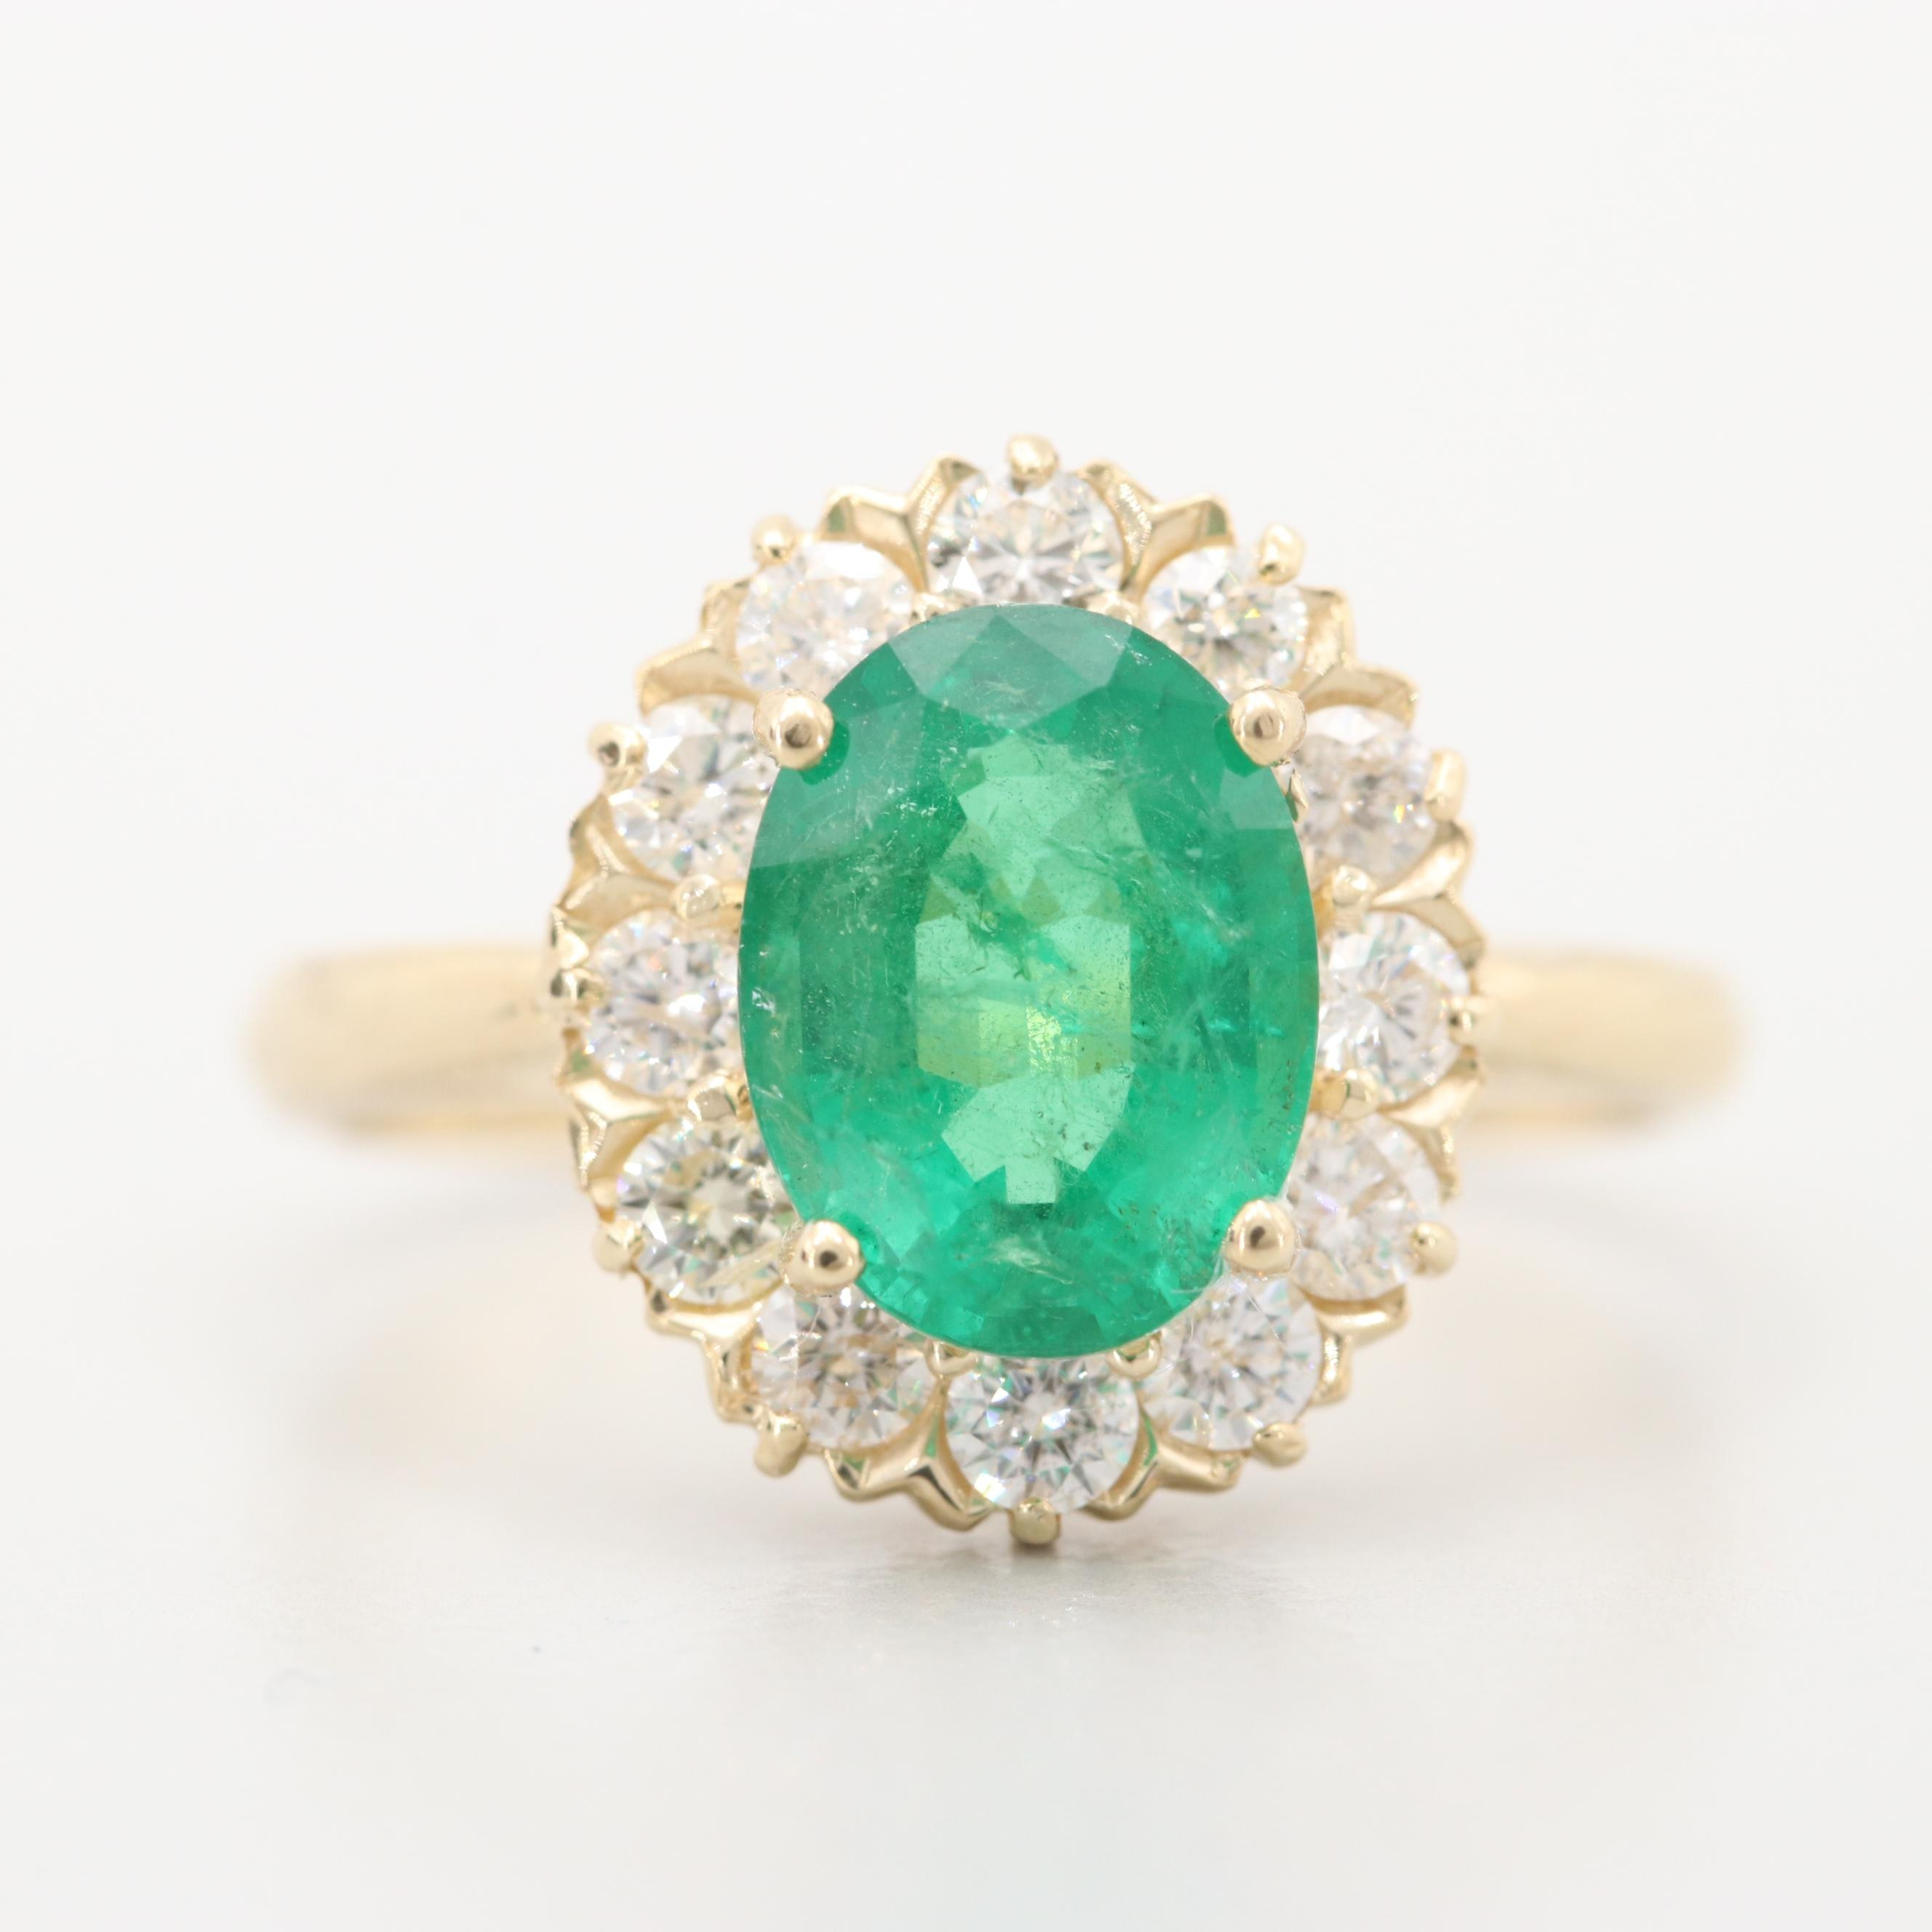 14K Yellow Gold 1.71 CT Emerald and Diamond Ring